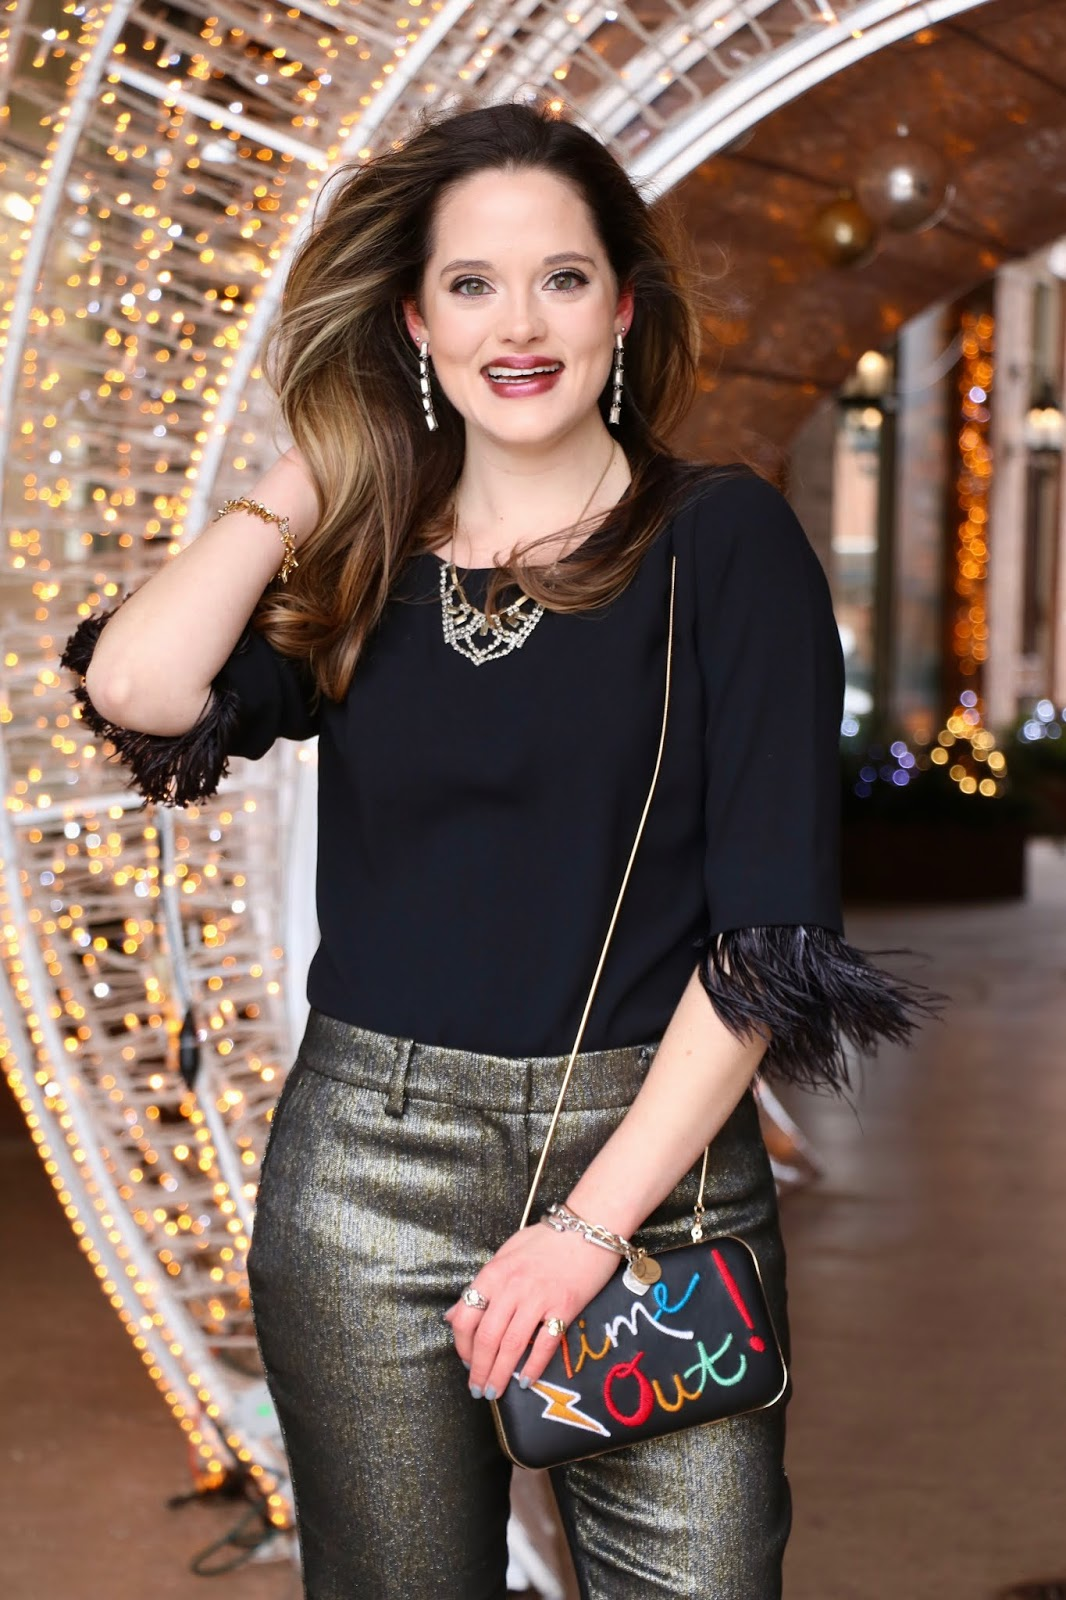 Nyc fashion blogger Kathleen Harper showing how to wear pants to a party